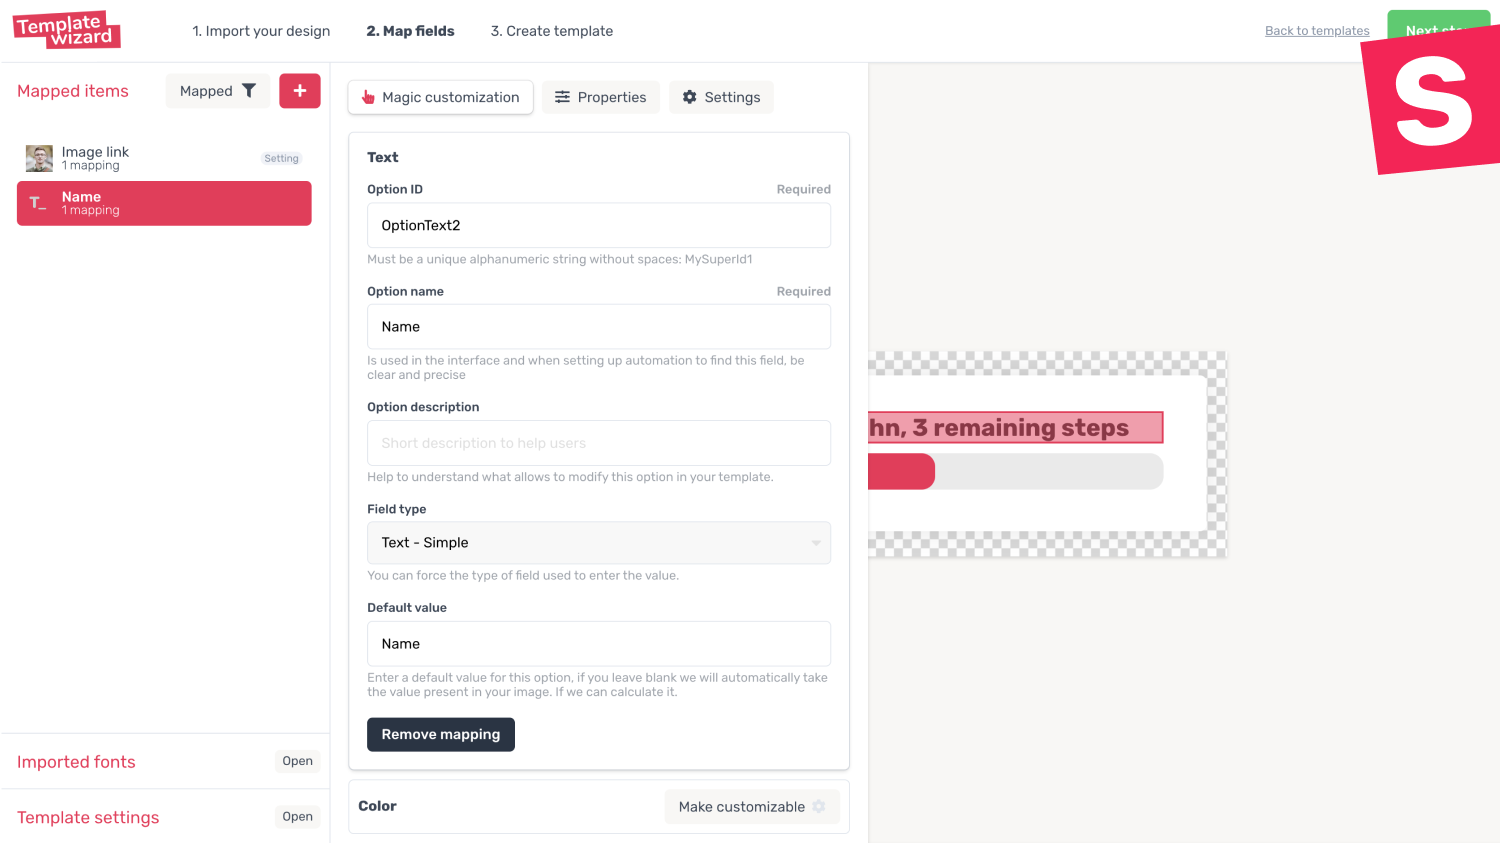 Create template and precisely point out the items to be personalized